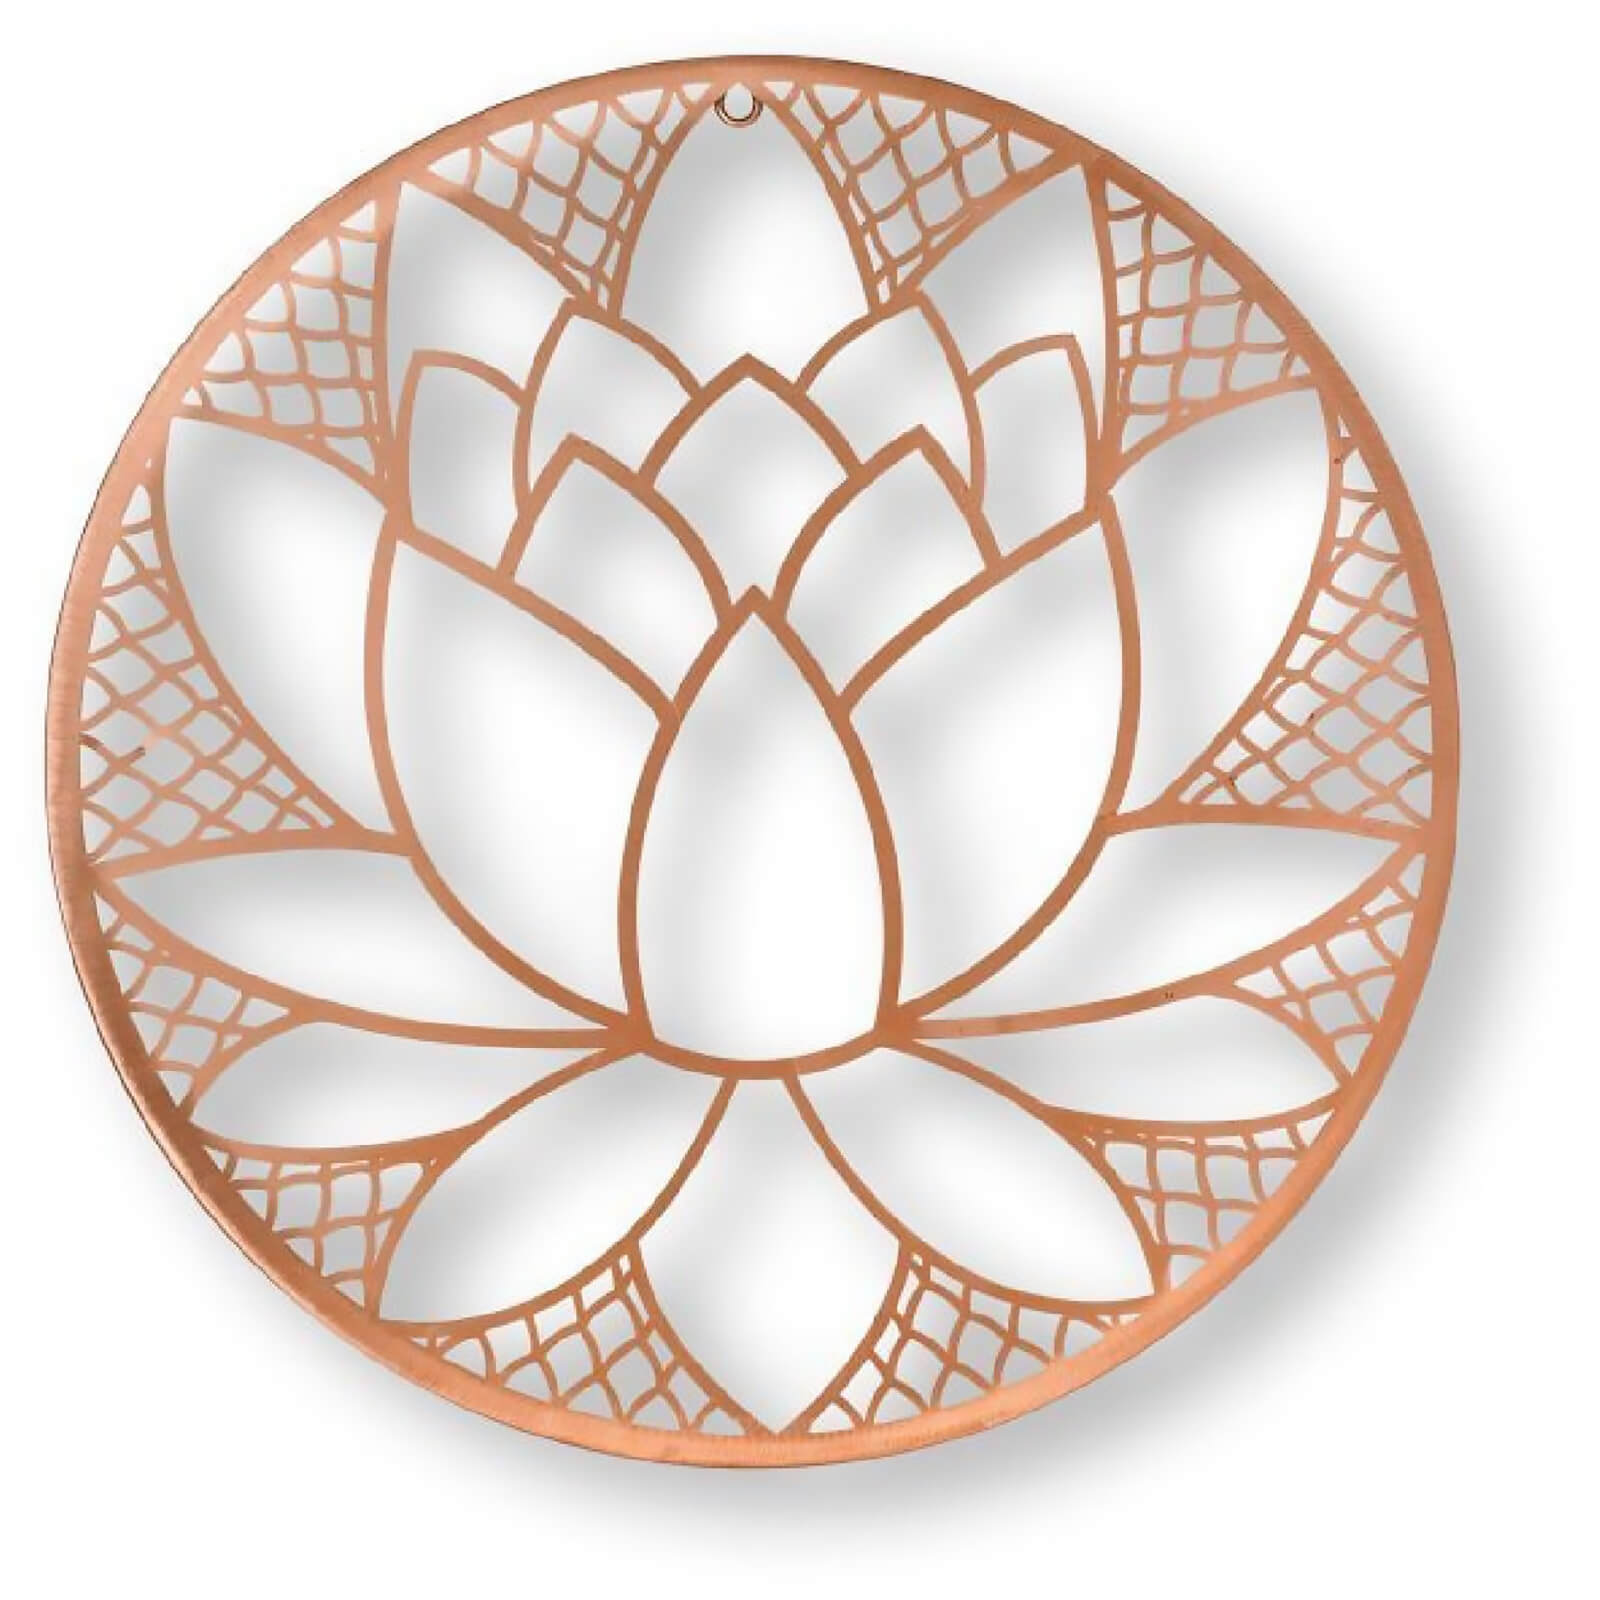 Art for the home rose gold lotus blossom wire wall art